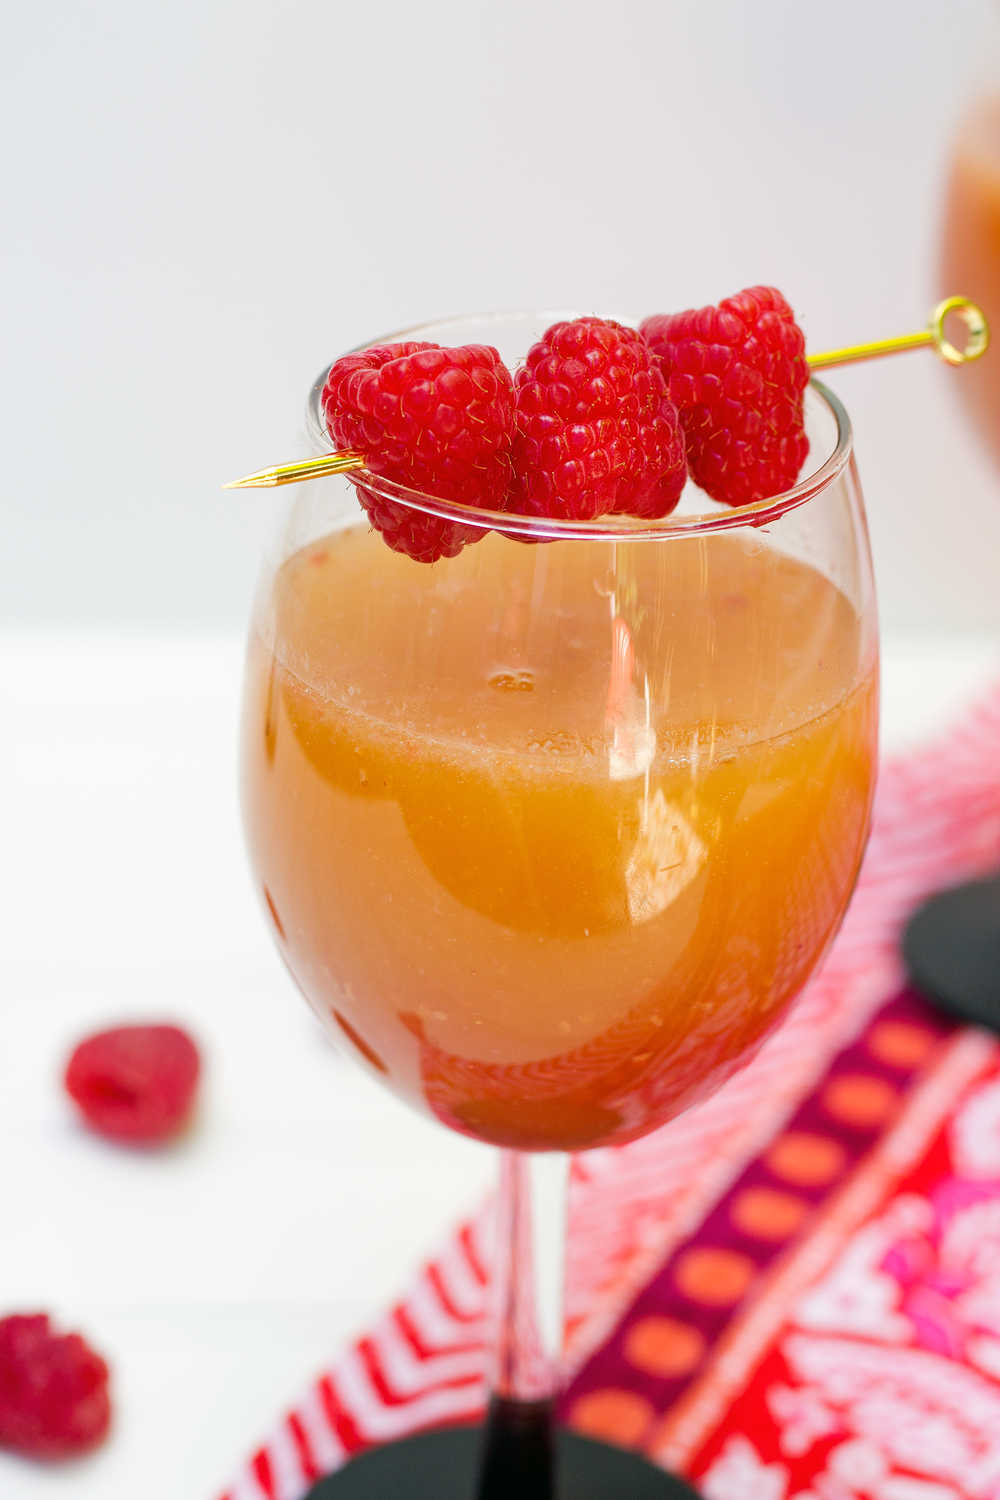 The perfect brunch cocktail: Raspberry Peach Bellini! Get the recipe from Unusuallylovely.com